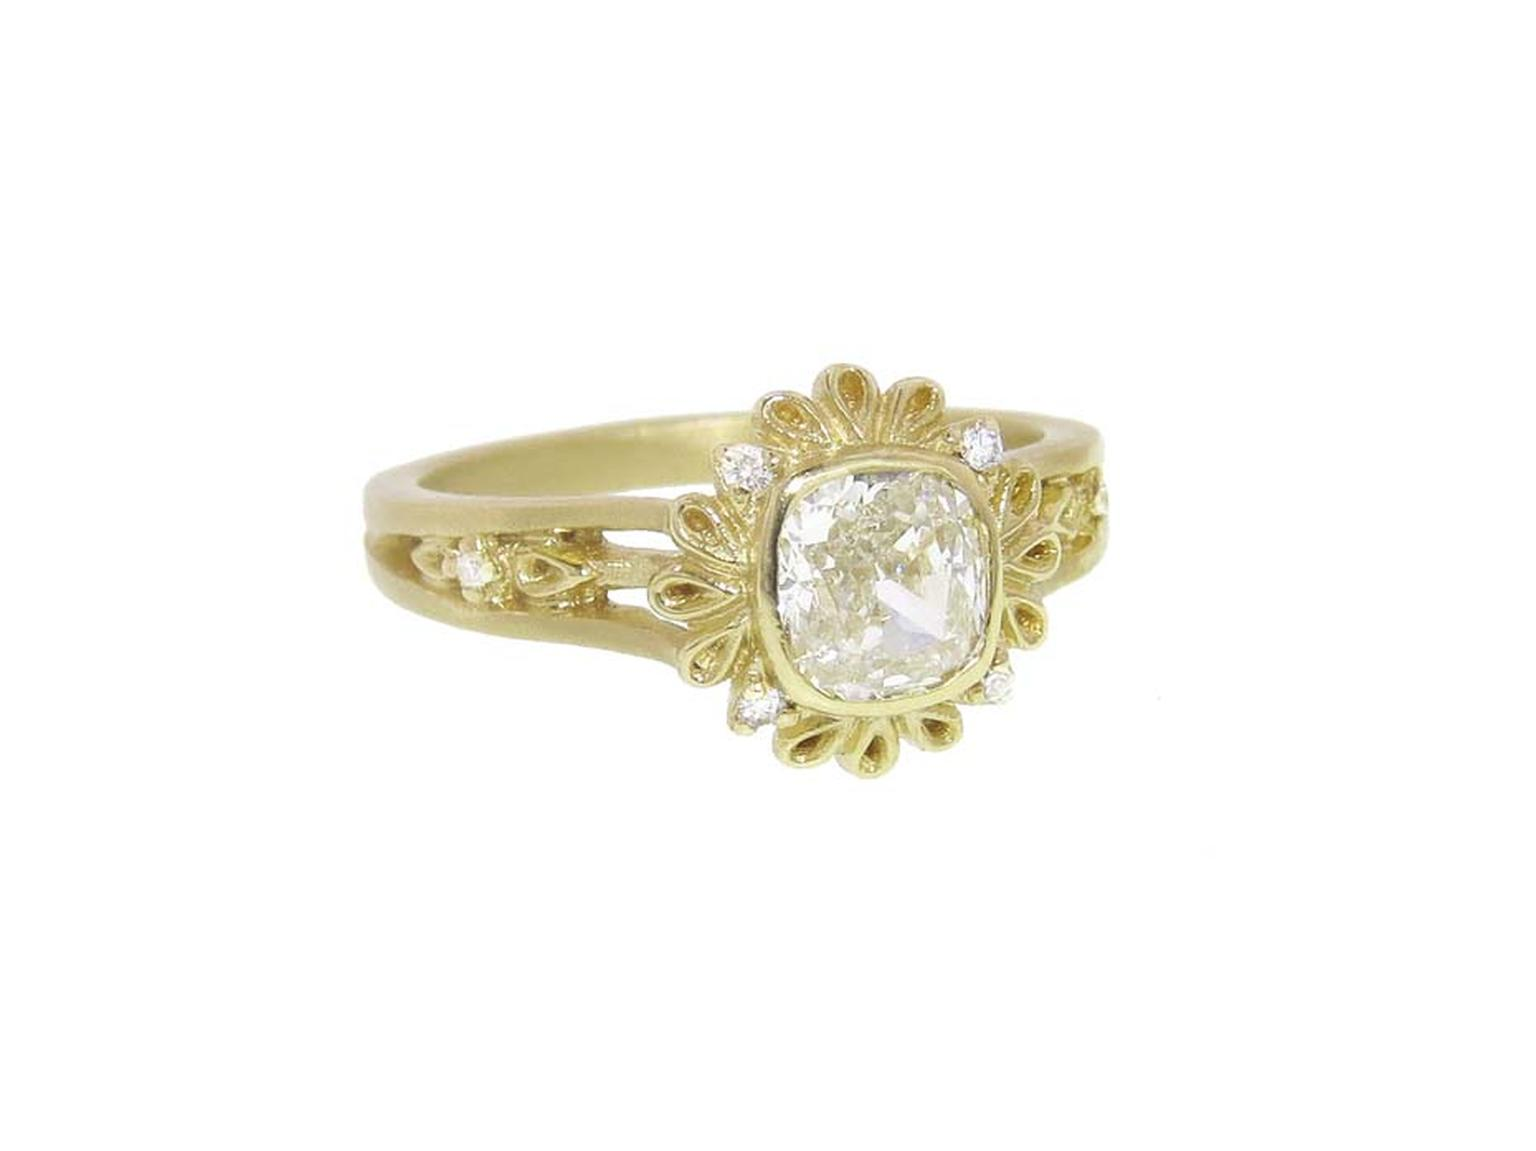 Megan Thorne's detailed Plume engagement ring in yellow gold featuring a cushion-cut diamond.